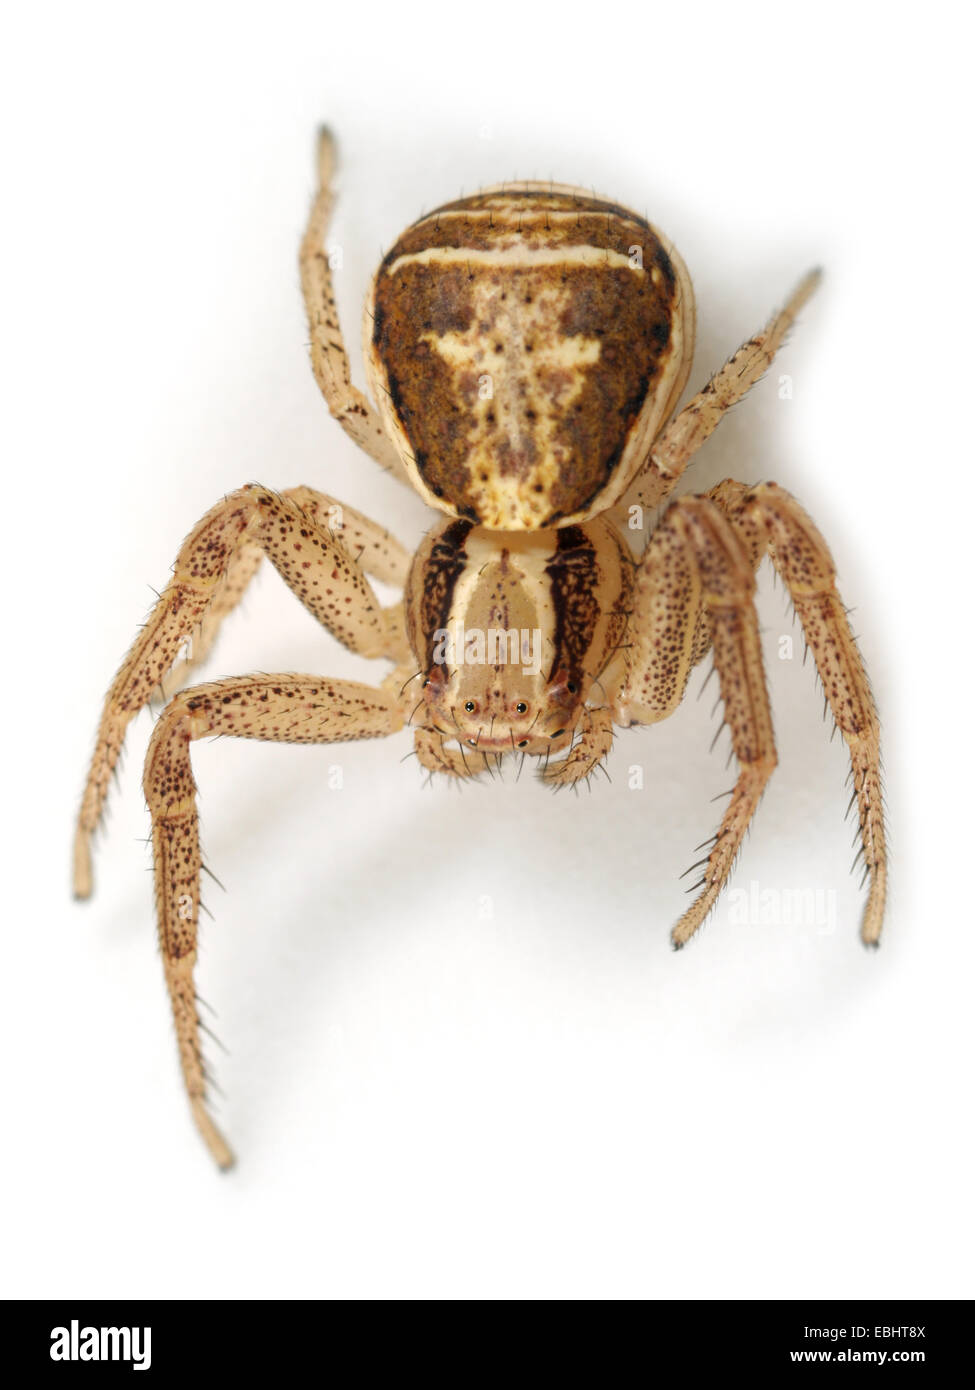 (Xysticus ulmi) Female Xysticus ulmi spider on white background. Family Thomisidae, Crab spiders. Stock Photo